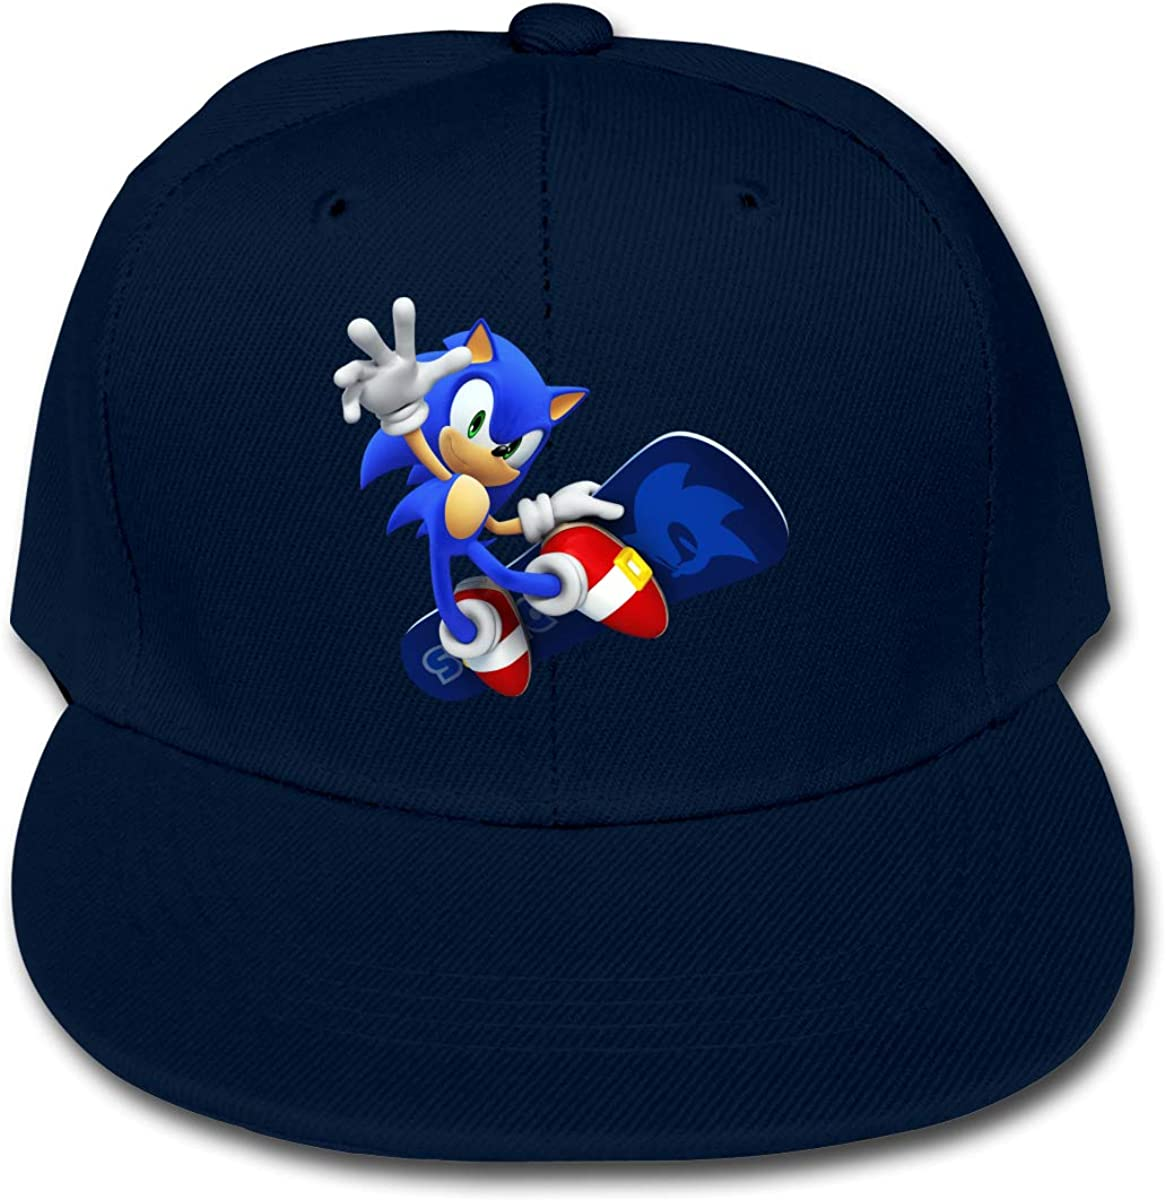 Orayh Kids Cotton Baseball Cap So-nic The Hedg-ehog Adjustable Hip-Hop Hat Outdoor Trucker Cap